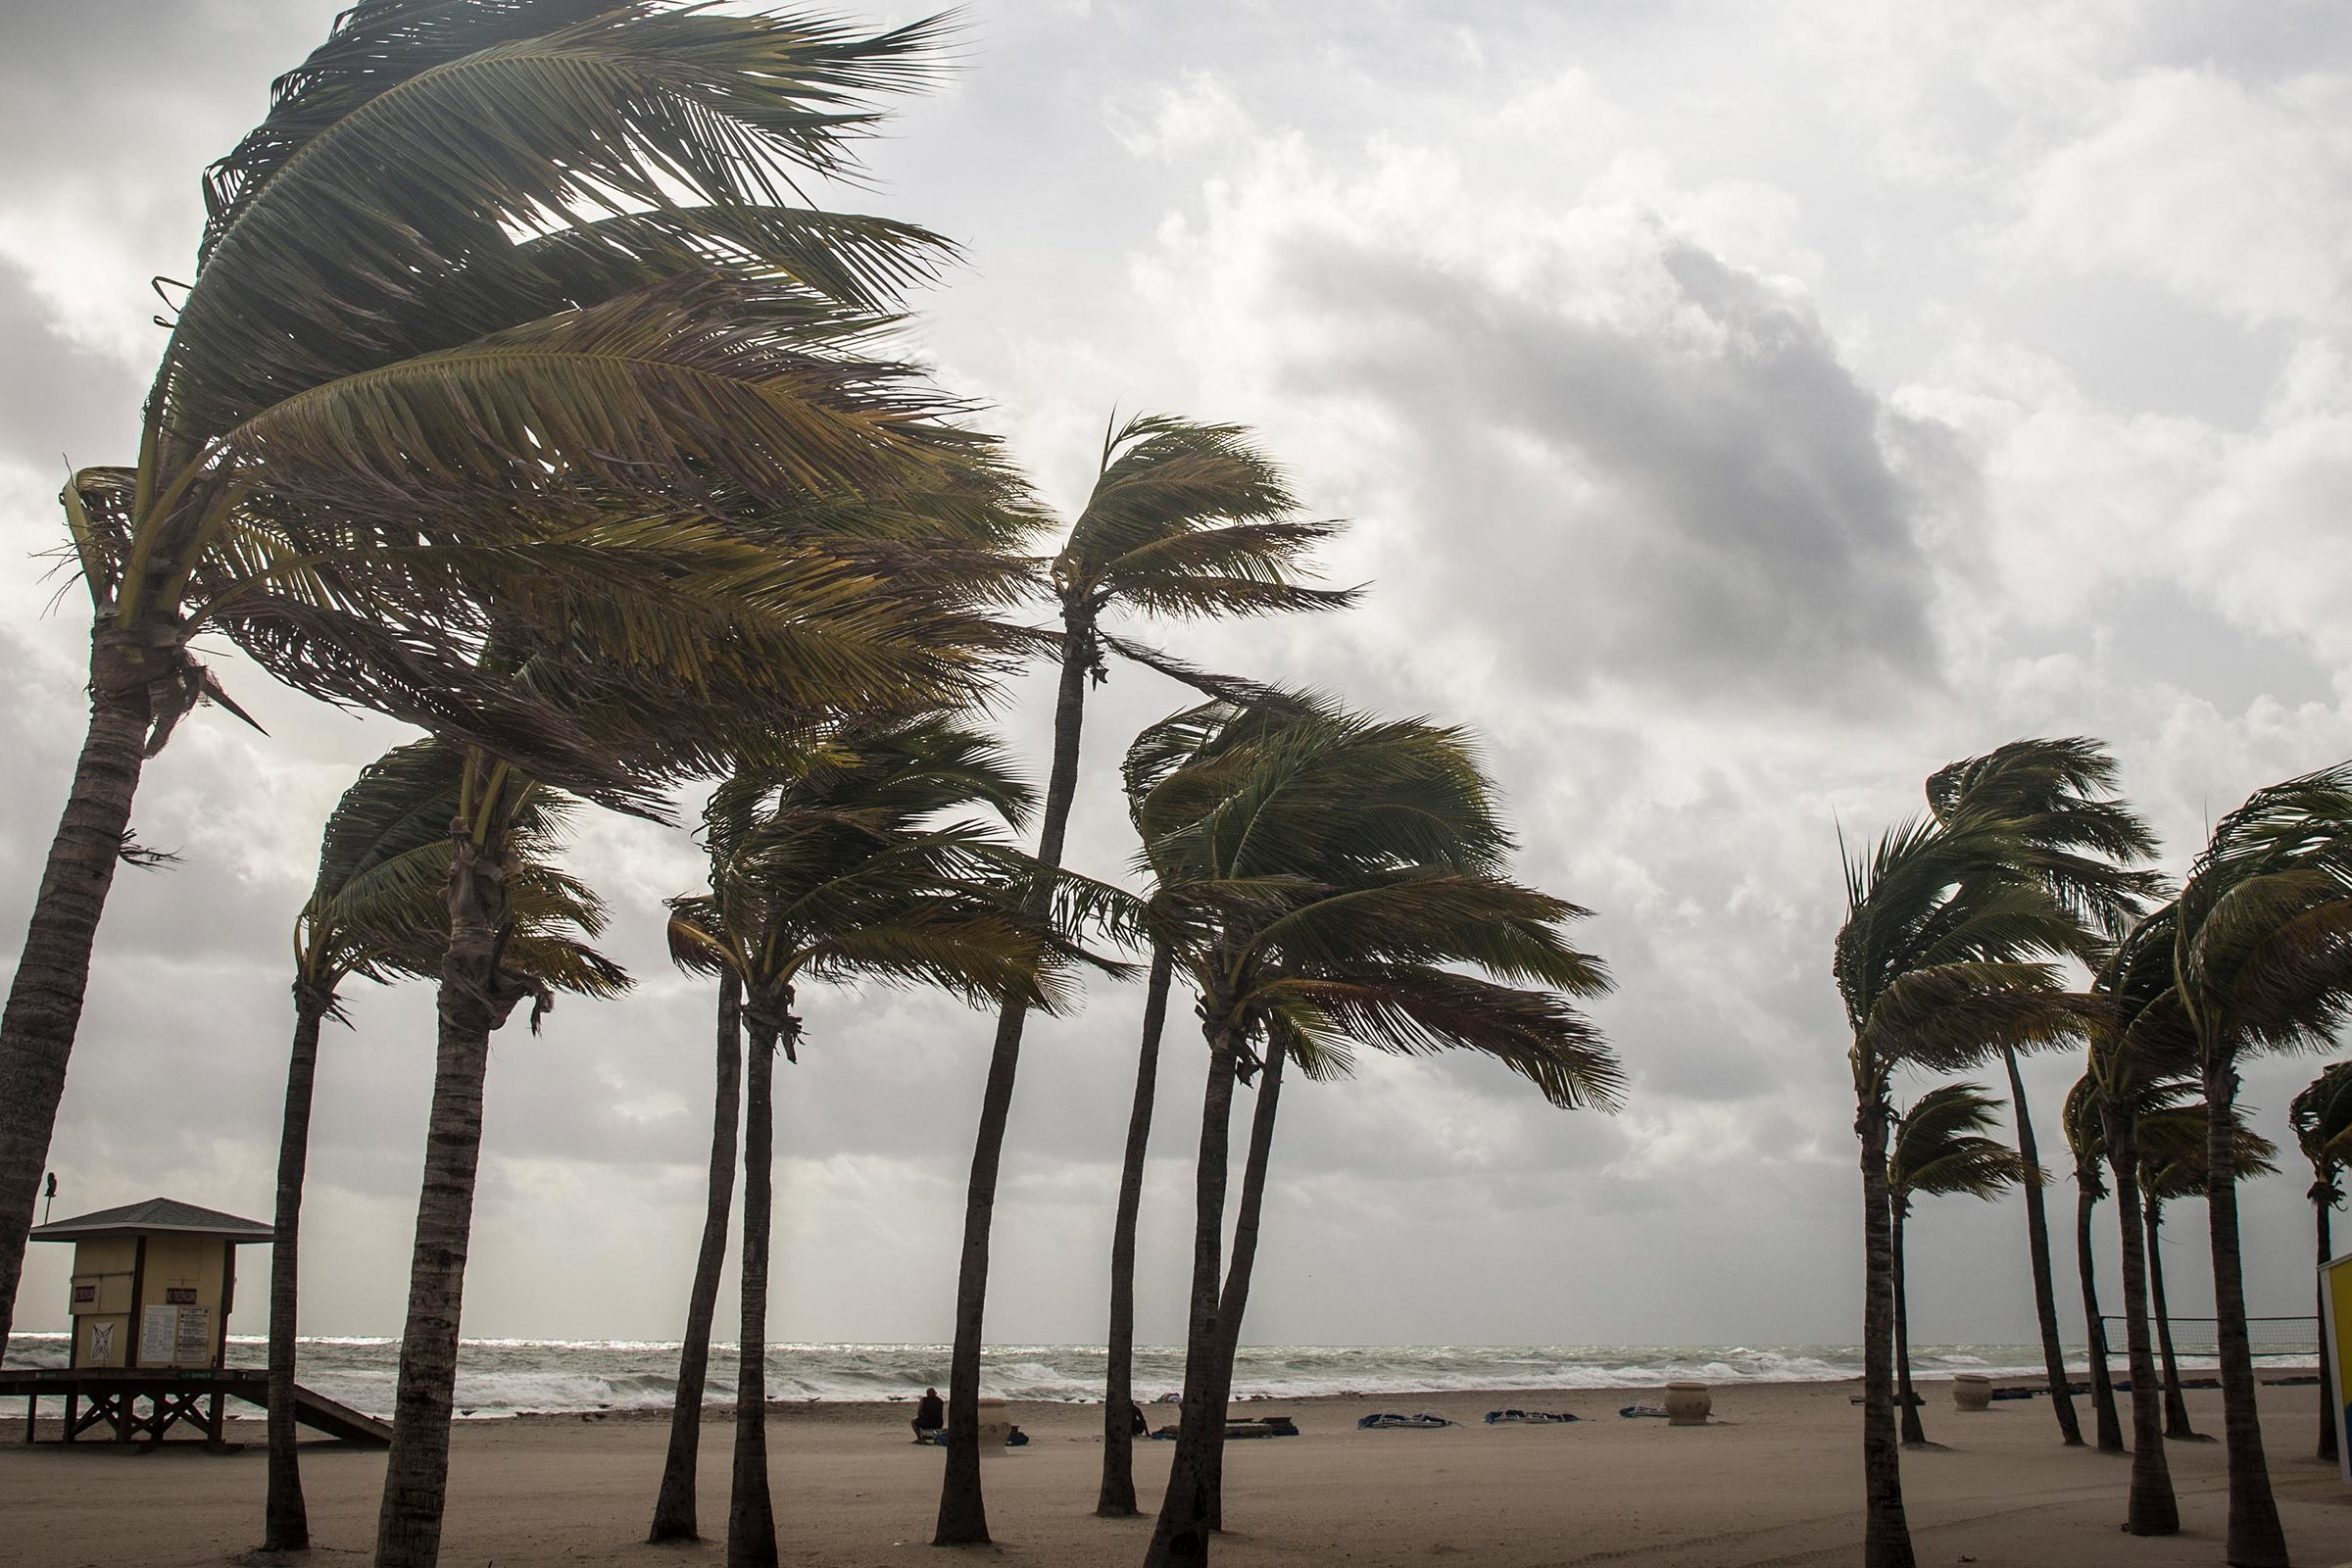 Hurricane Irma: Engineering researchers involved in forecasts and more